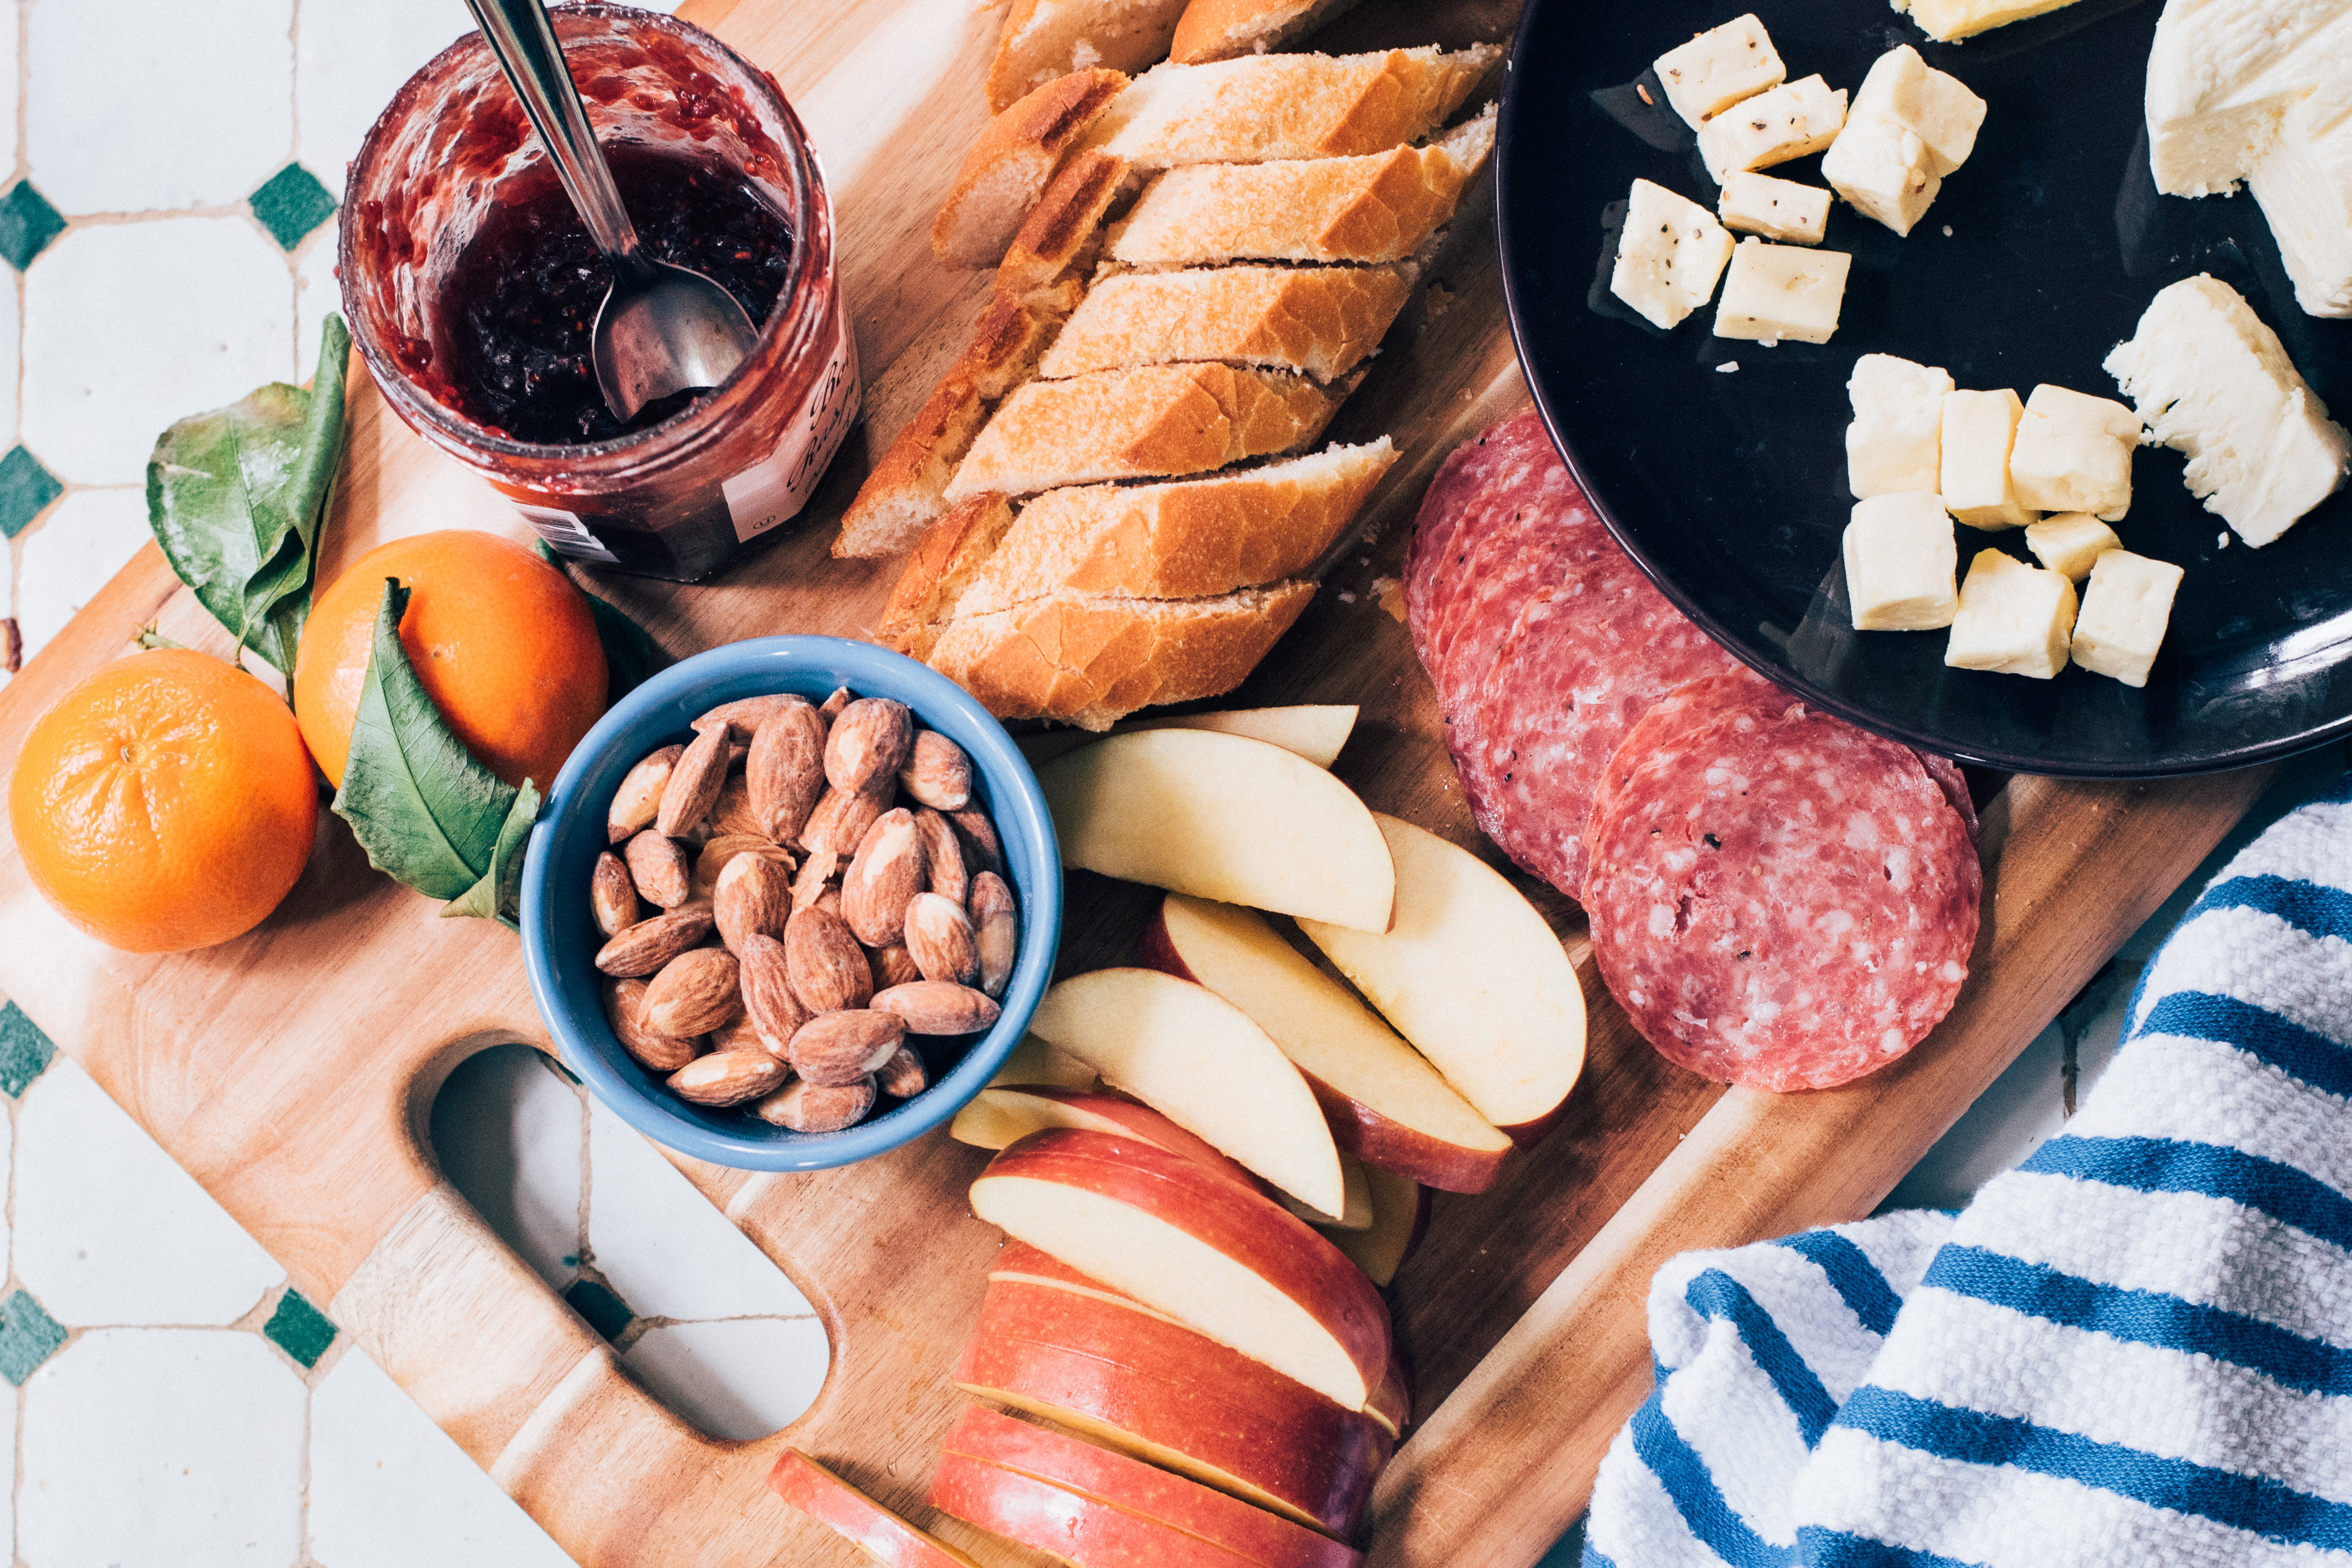 An overhead shot of a cutting board with almonds, fruit, bread and slices of salami on it